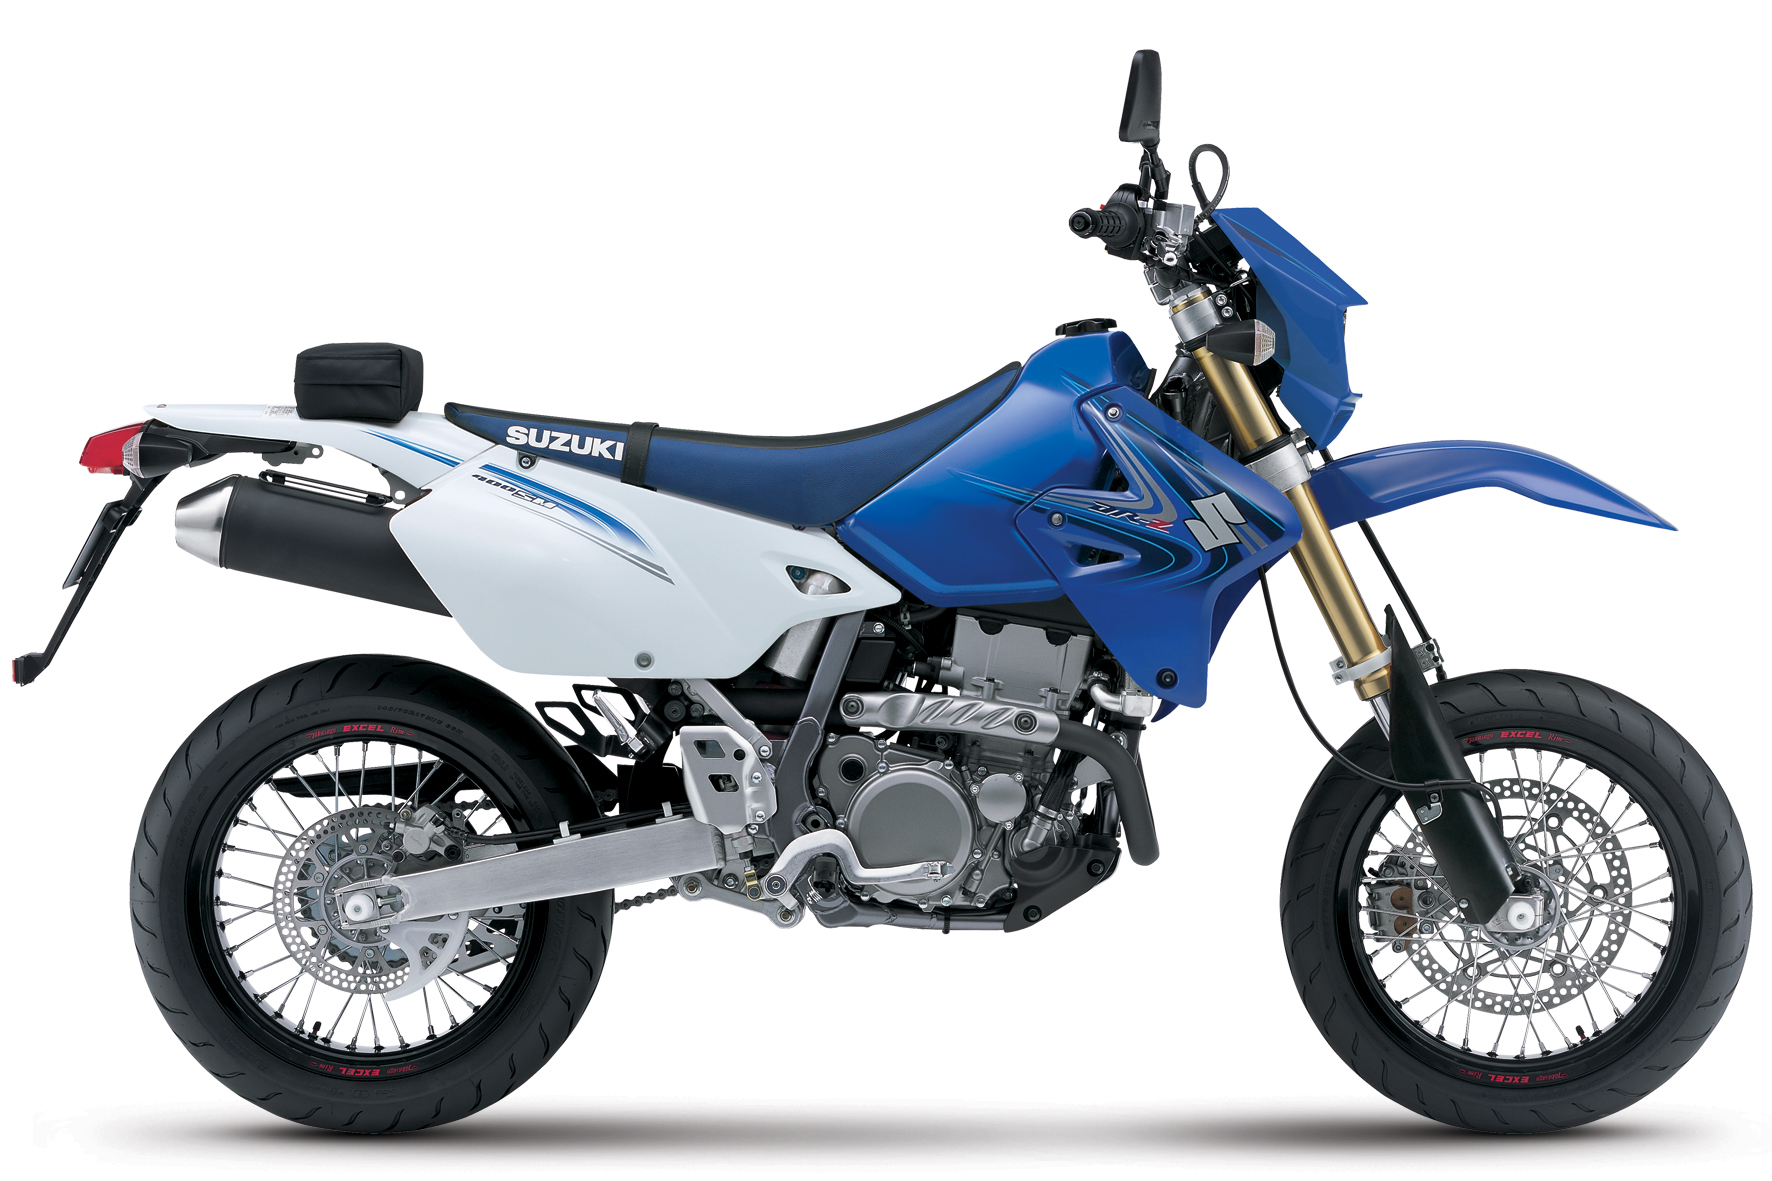 DR-Z400SM DRZ400 (2005 - 2009) review